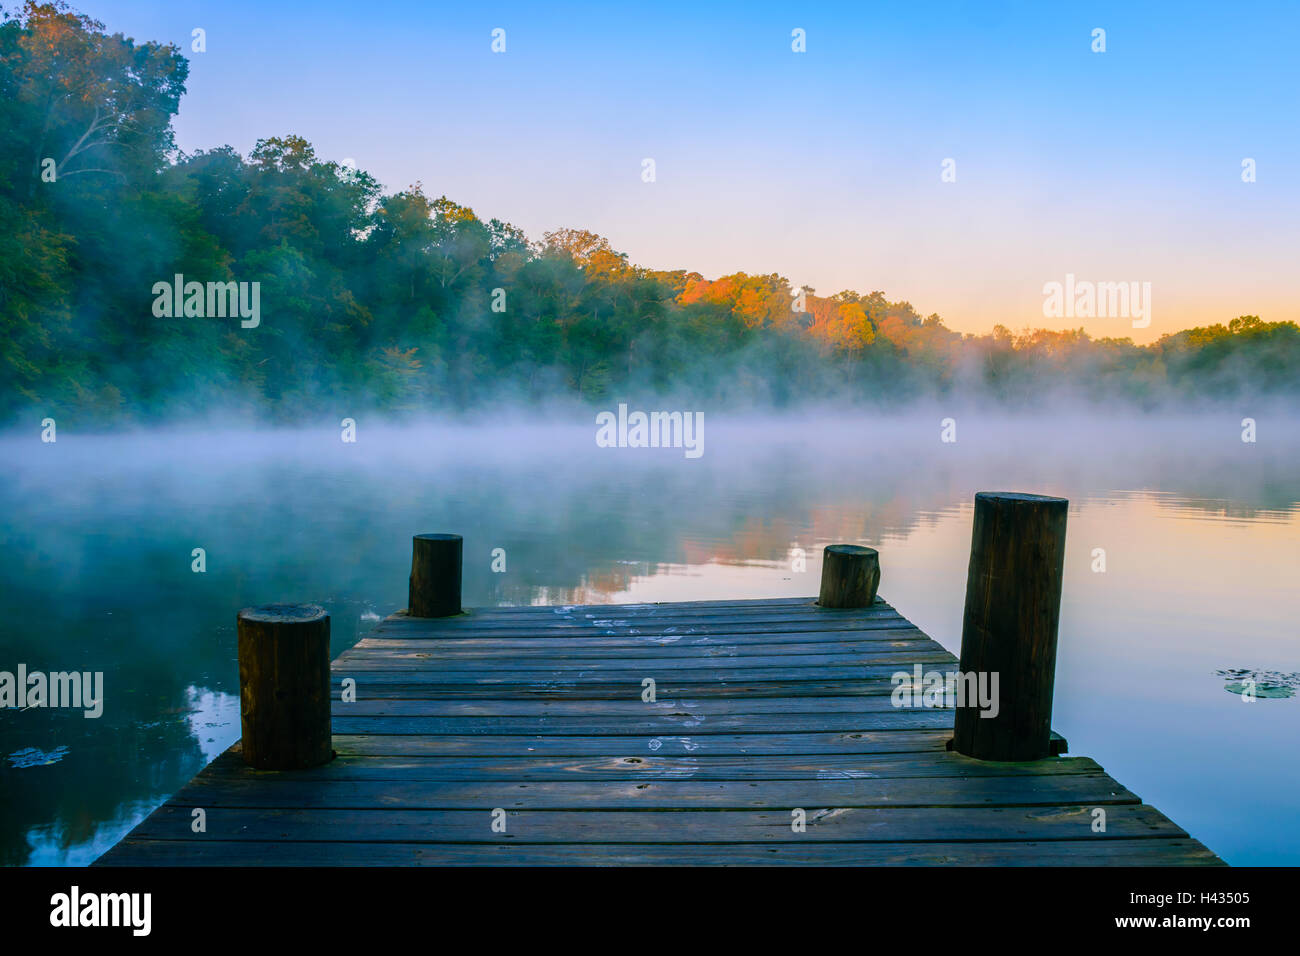 Morning mist on reflective water, Mt Saint Francis, Indiana.ff - Stock Image